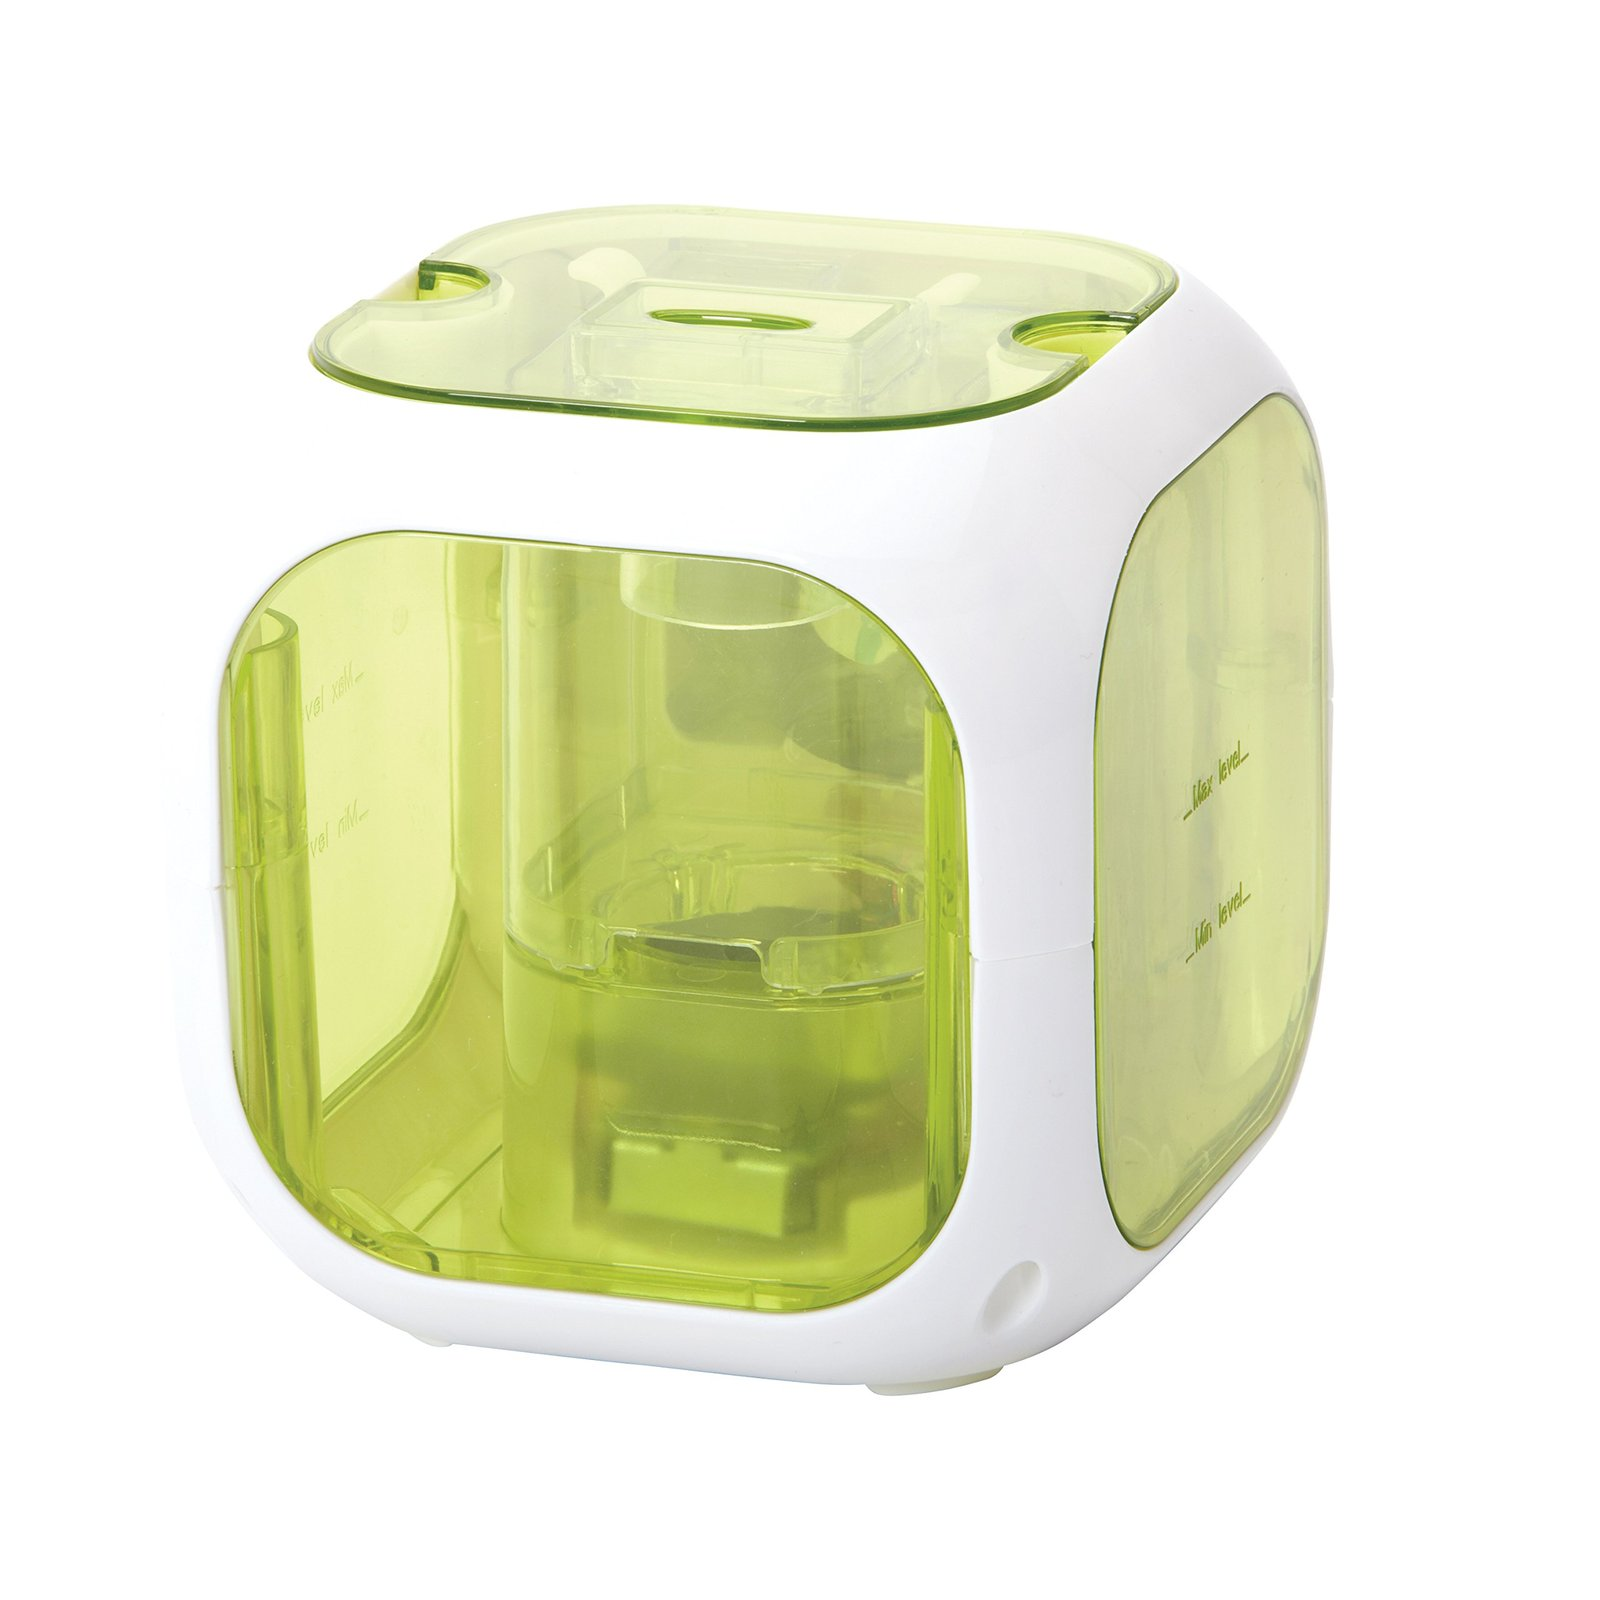 Cube Mate Ultrasonic Cool Mist Humidifier and Aromatherapy Diffus #8E9833